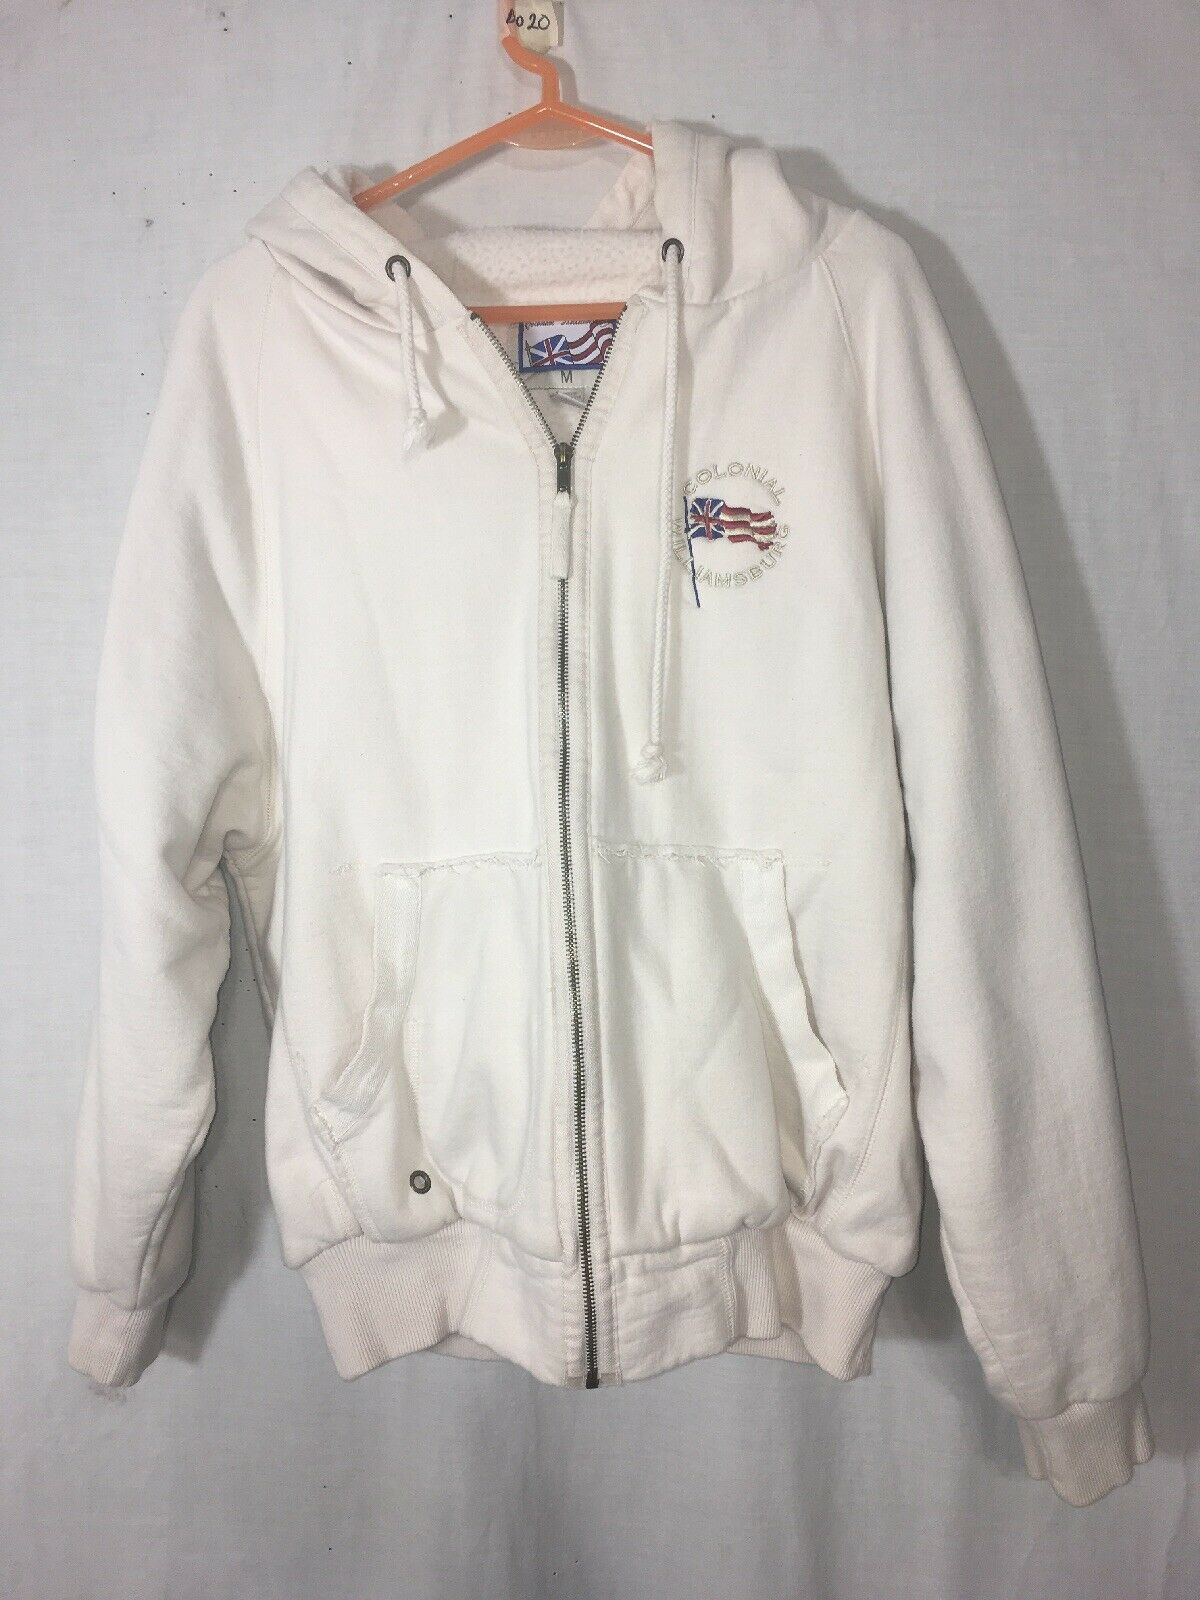 Colonial Williamsburg Women's Hoodie Sweatshirt Size M Off-White Embroidered